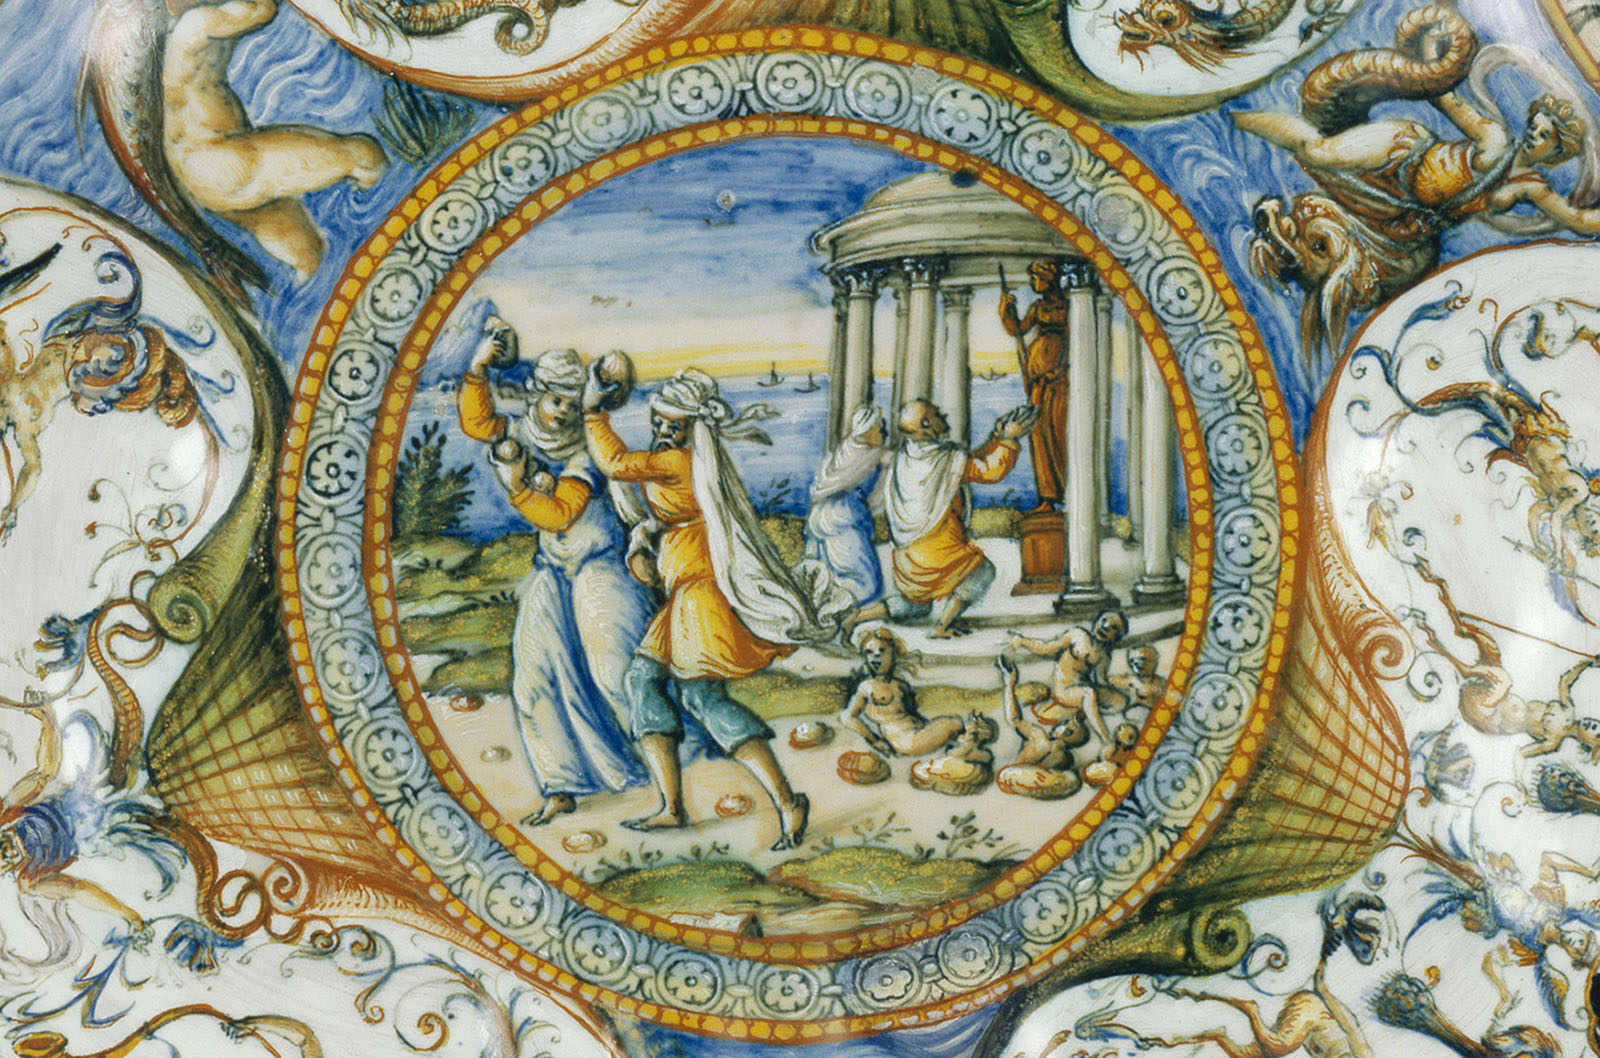 Illustration of two people taking something from a group of people on the ground, with a small temple in the background with two supplicants, all enclosed in a circle.